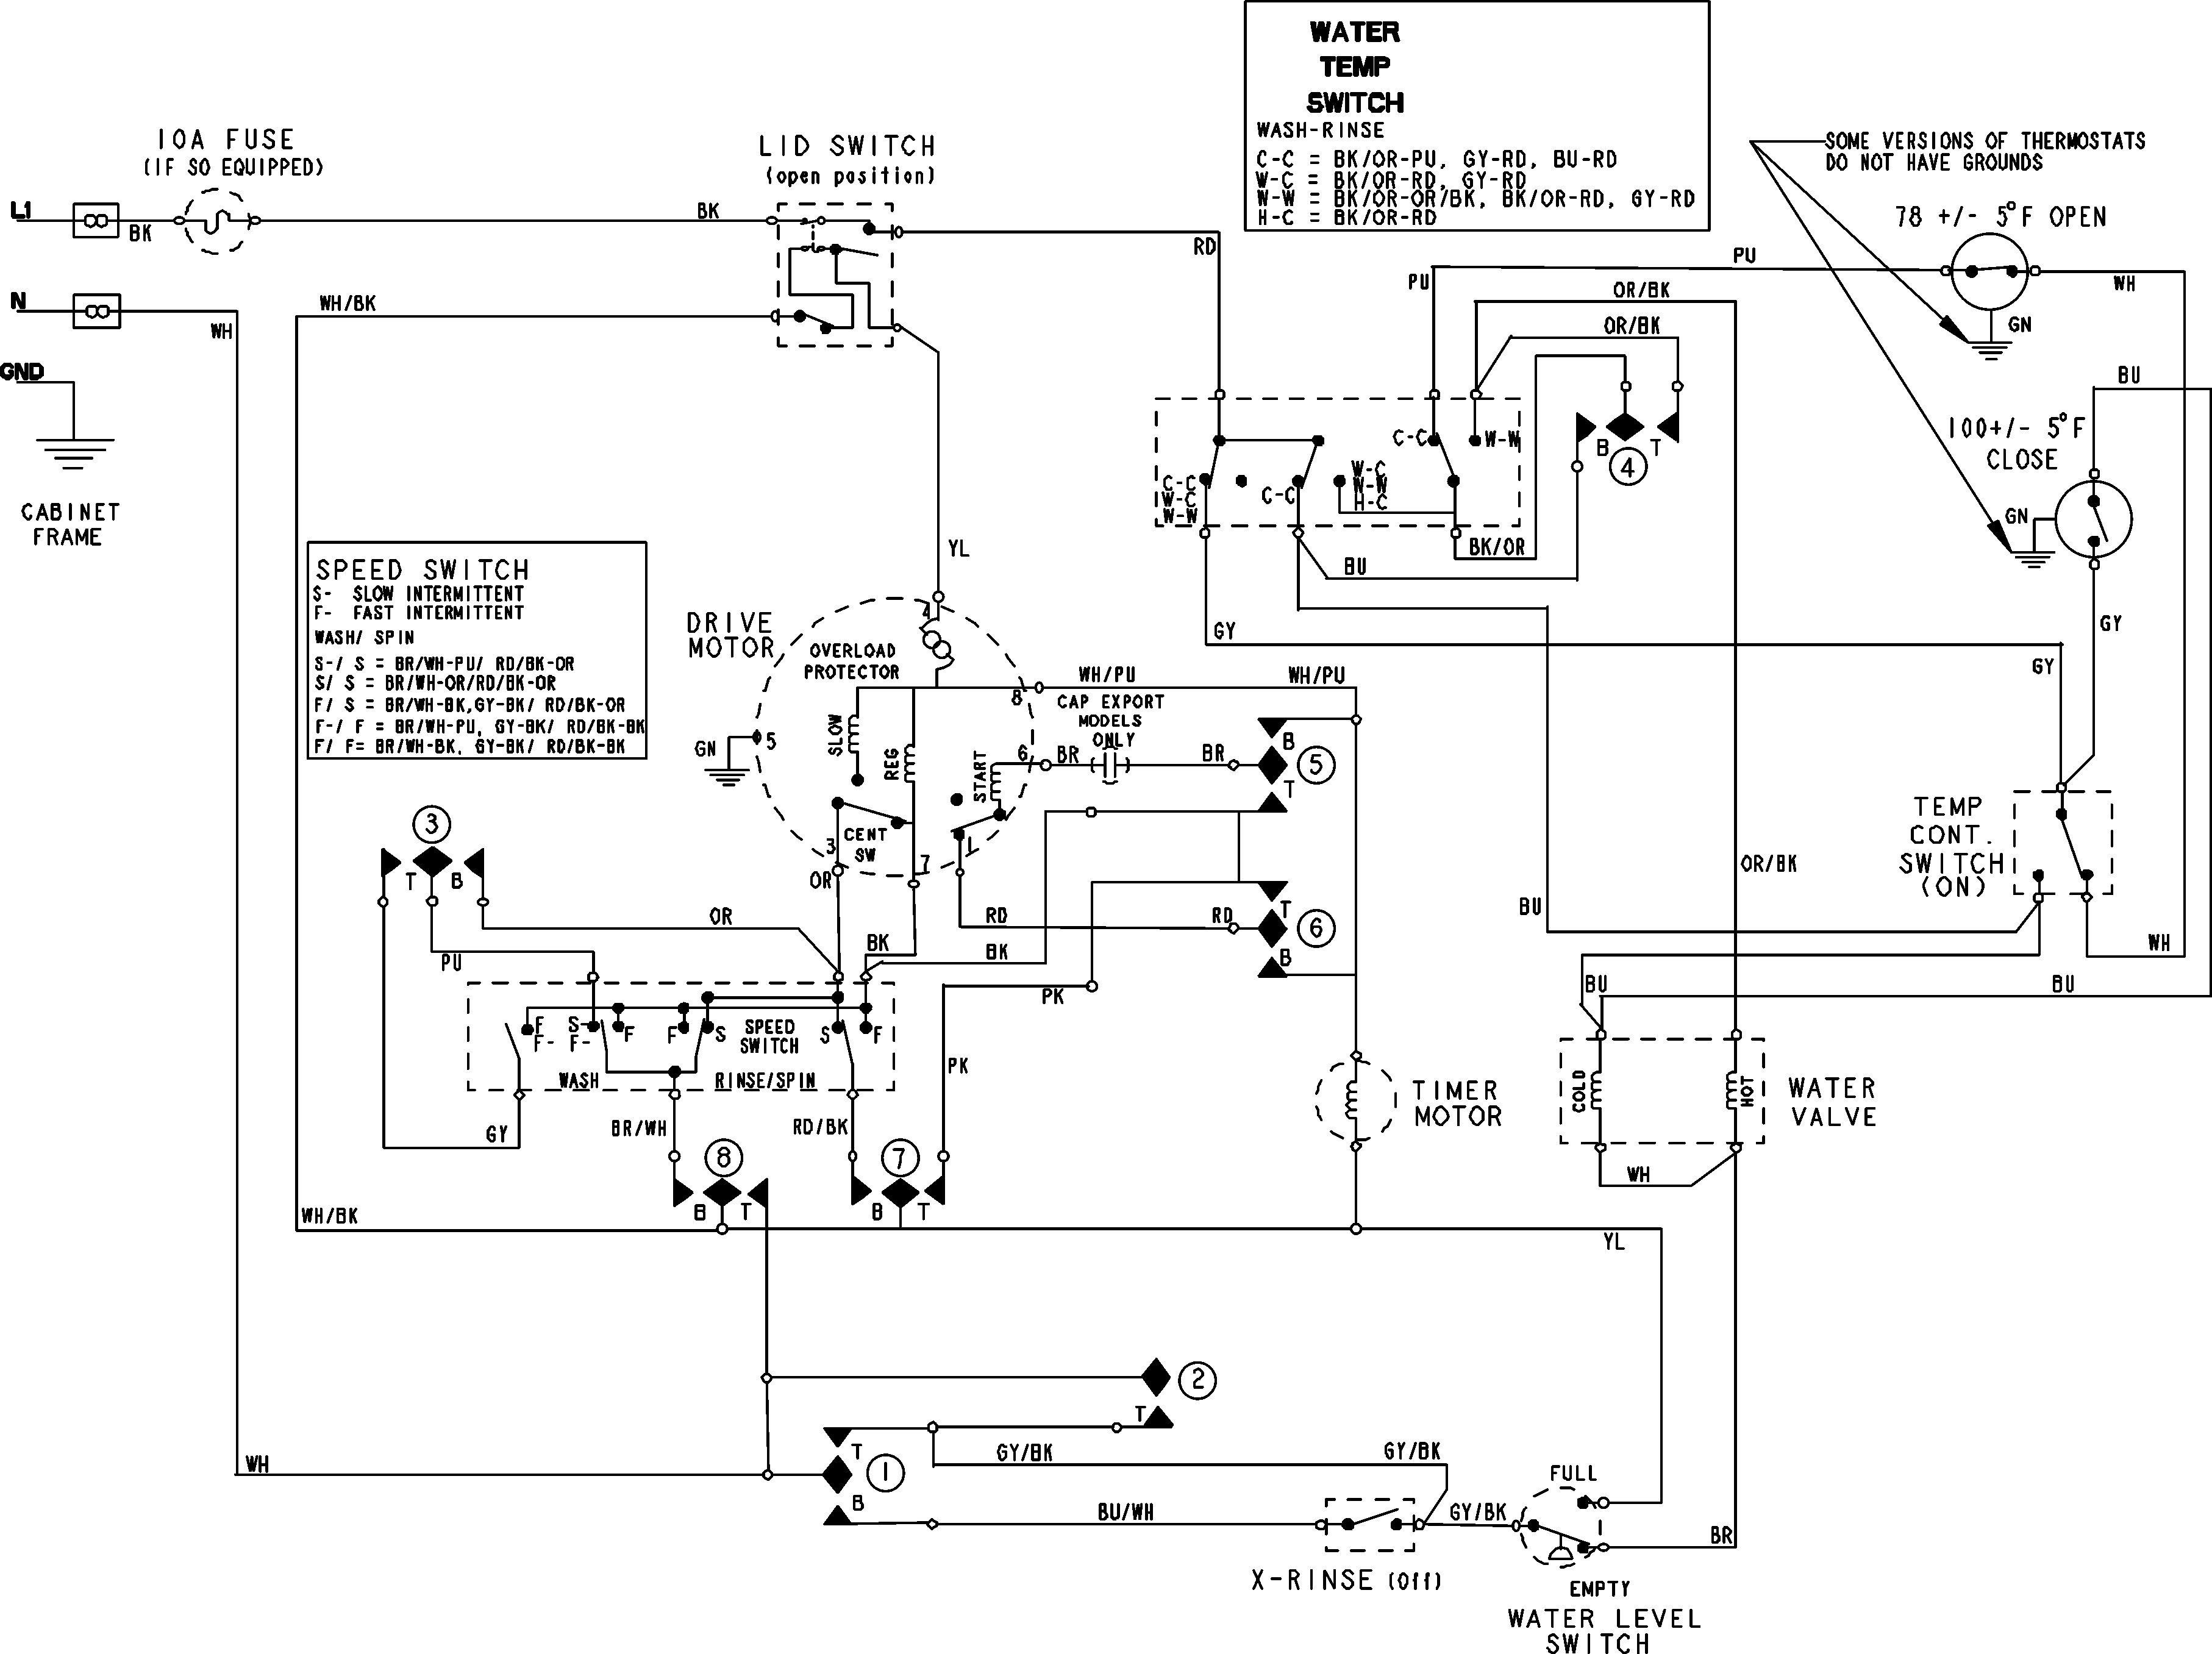 cloths dryer wiring diagram 220